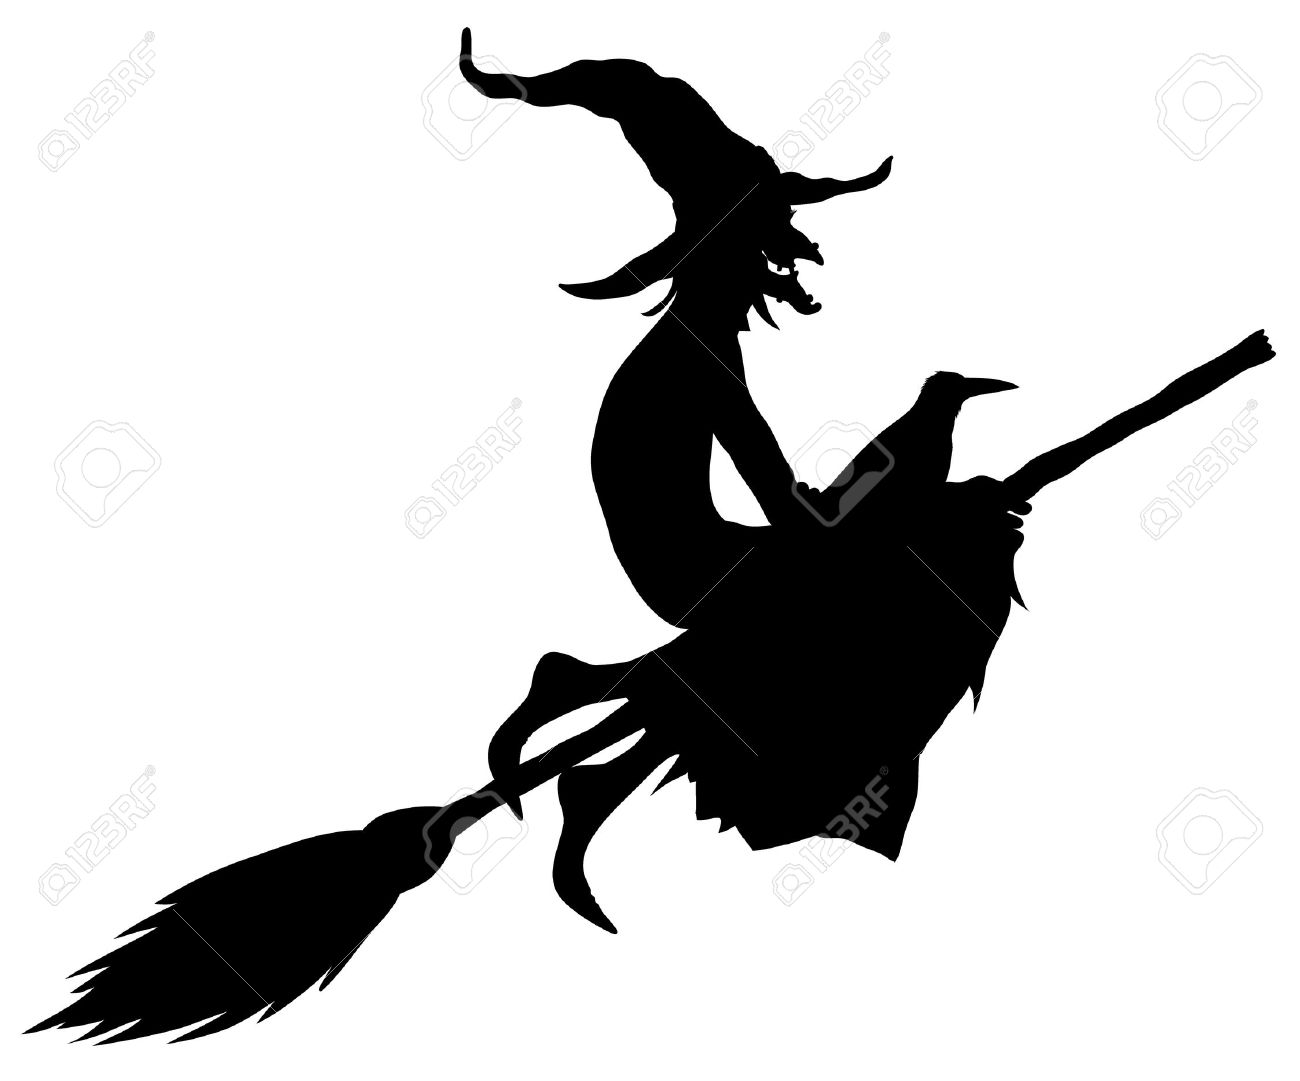 Halloween Witch Silhouette Royalty Free Cliparts, Vectors, And ...